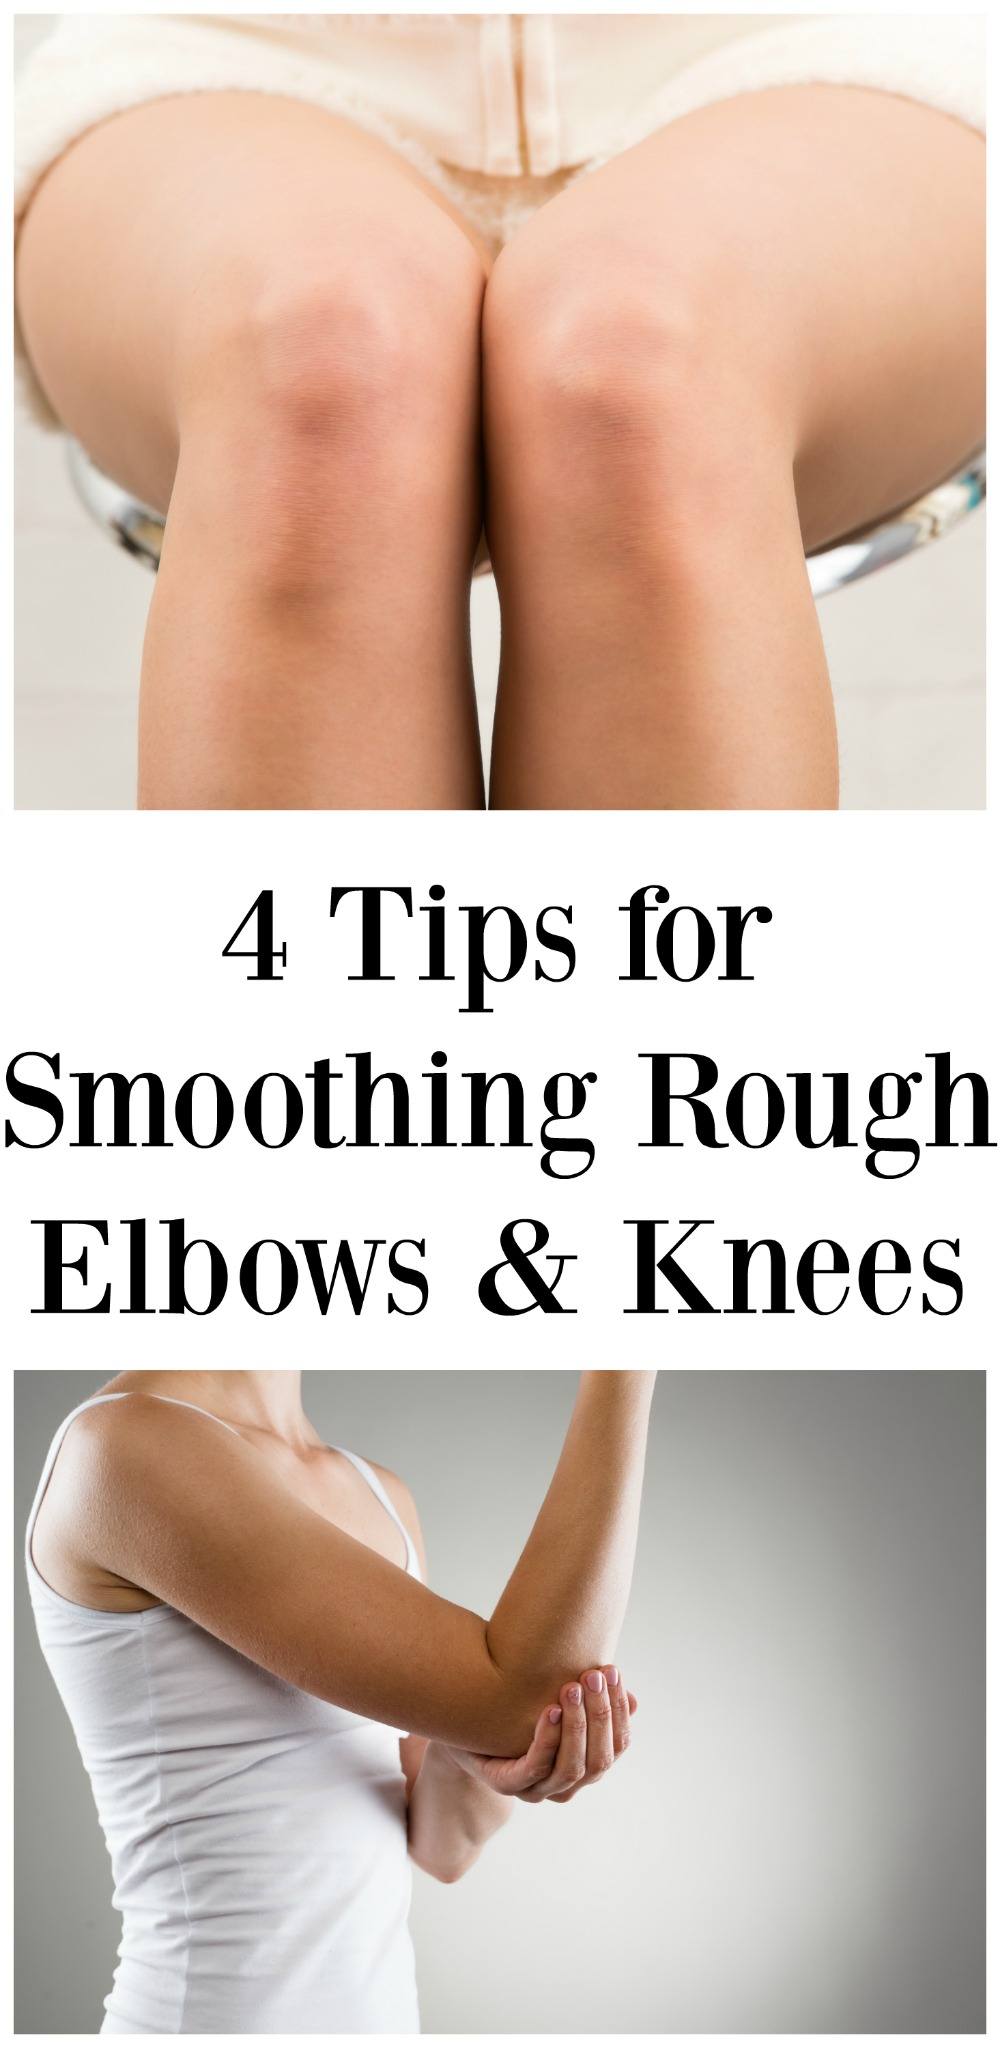 4 Tips for Smoothing Rough Elbows & Knees